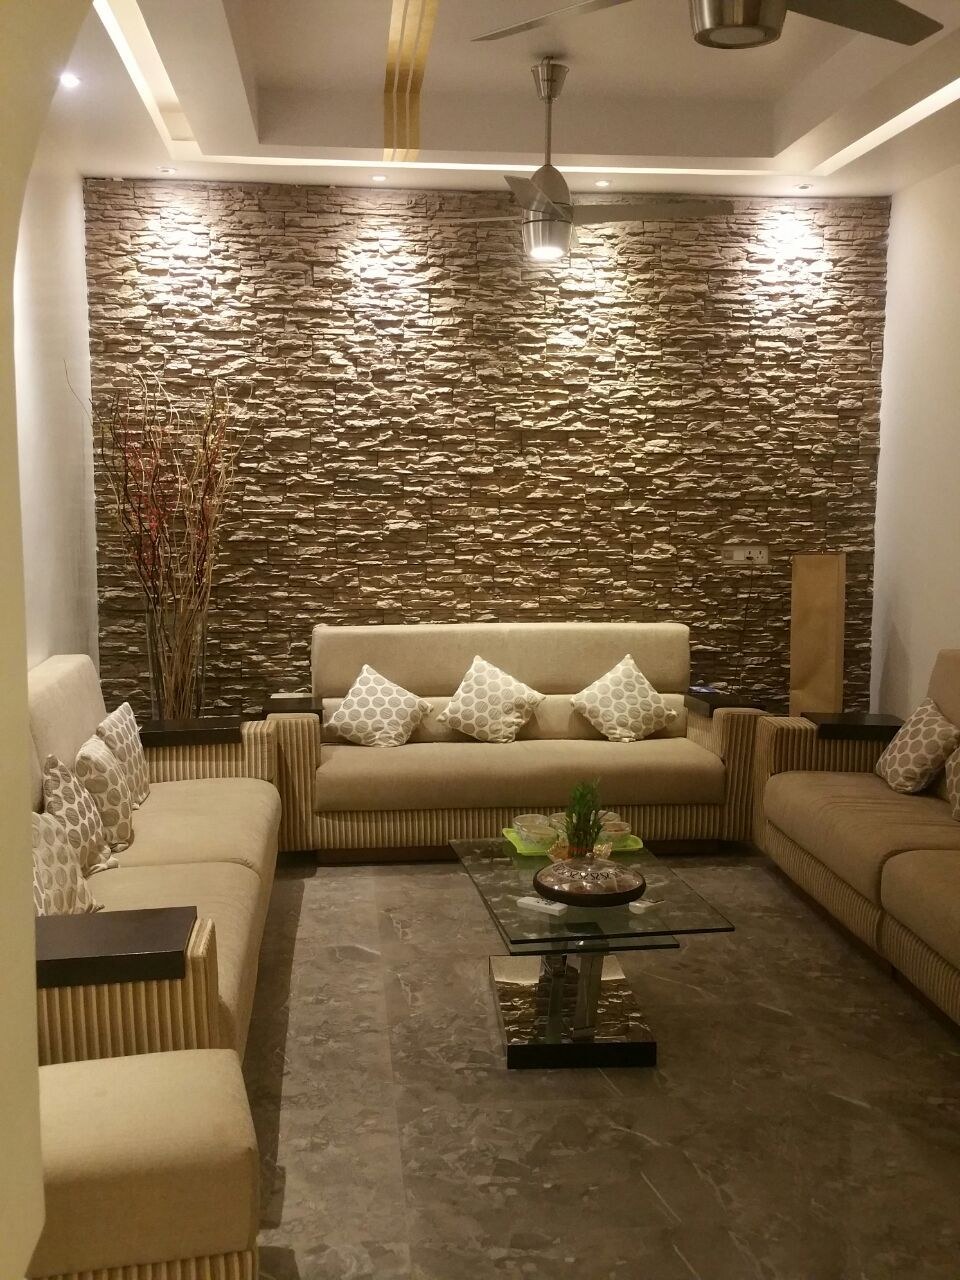 Flexstone Nano Living Room Design Modern Stone Wall Interior